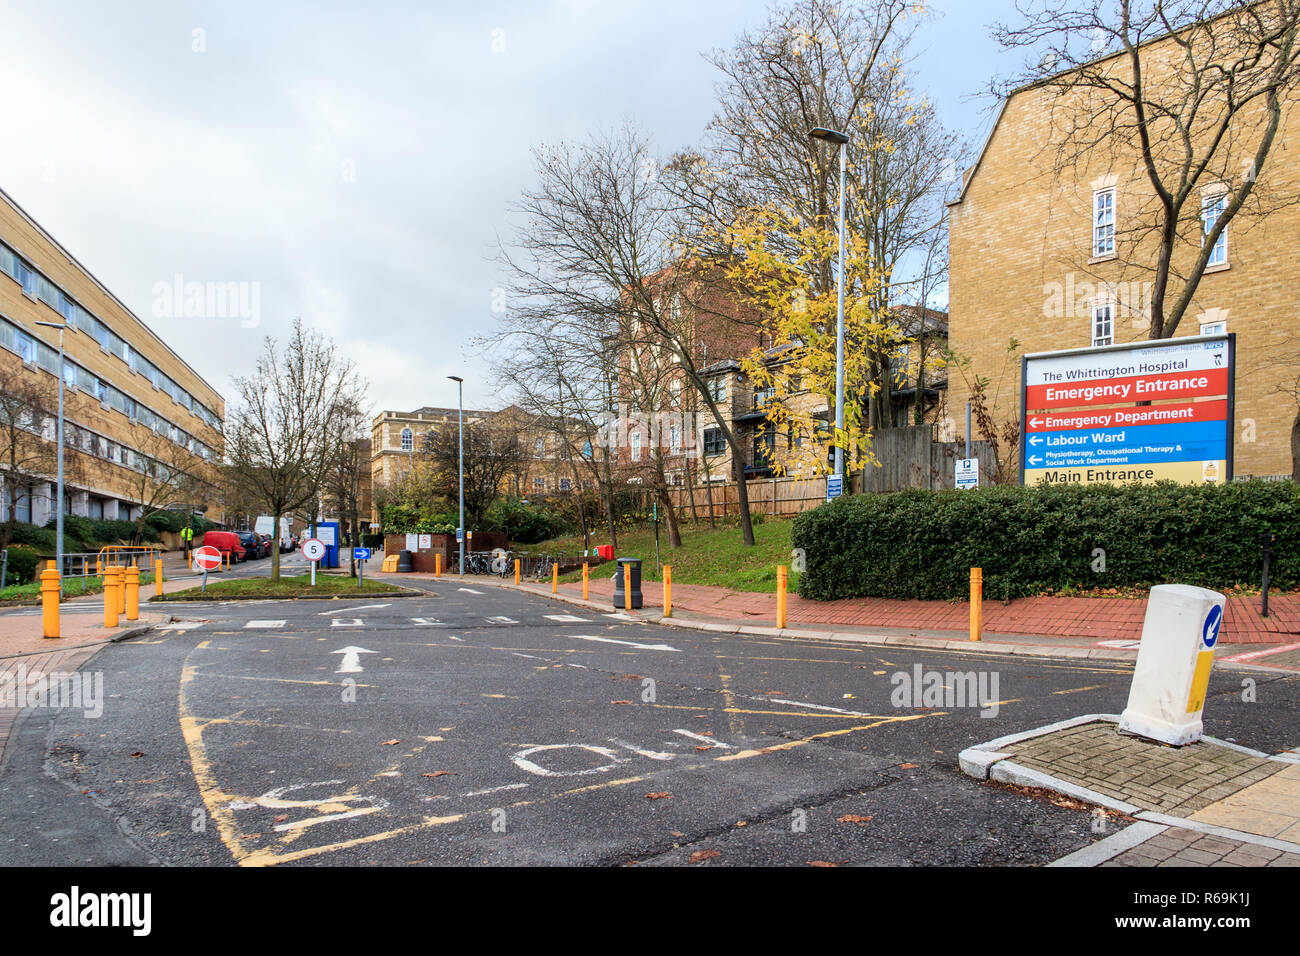 Entrance to the Emergency and Urgent Care departments  of the Whittington Hospital NHS trust on Highgate Hill, London, UK - Stock Image